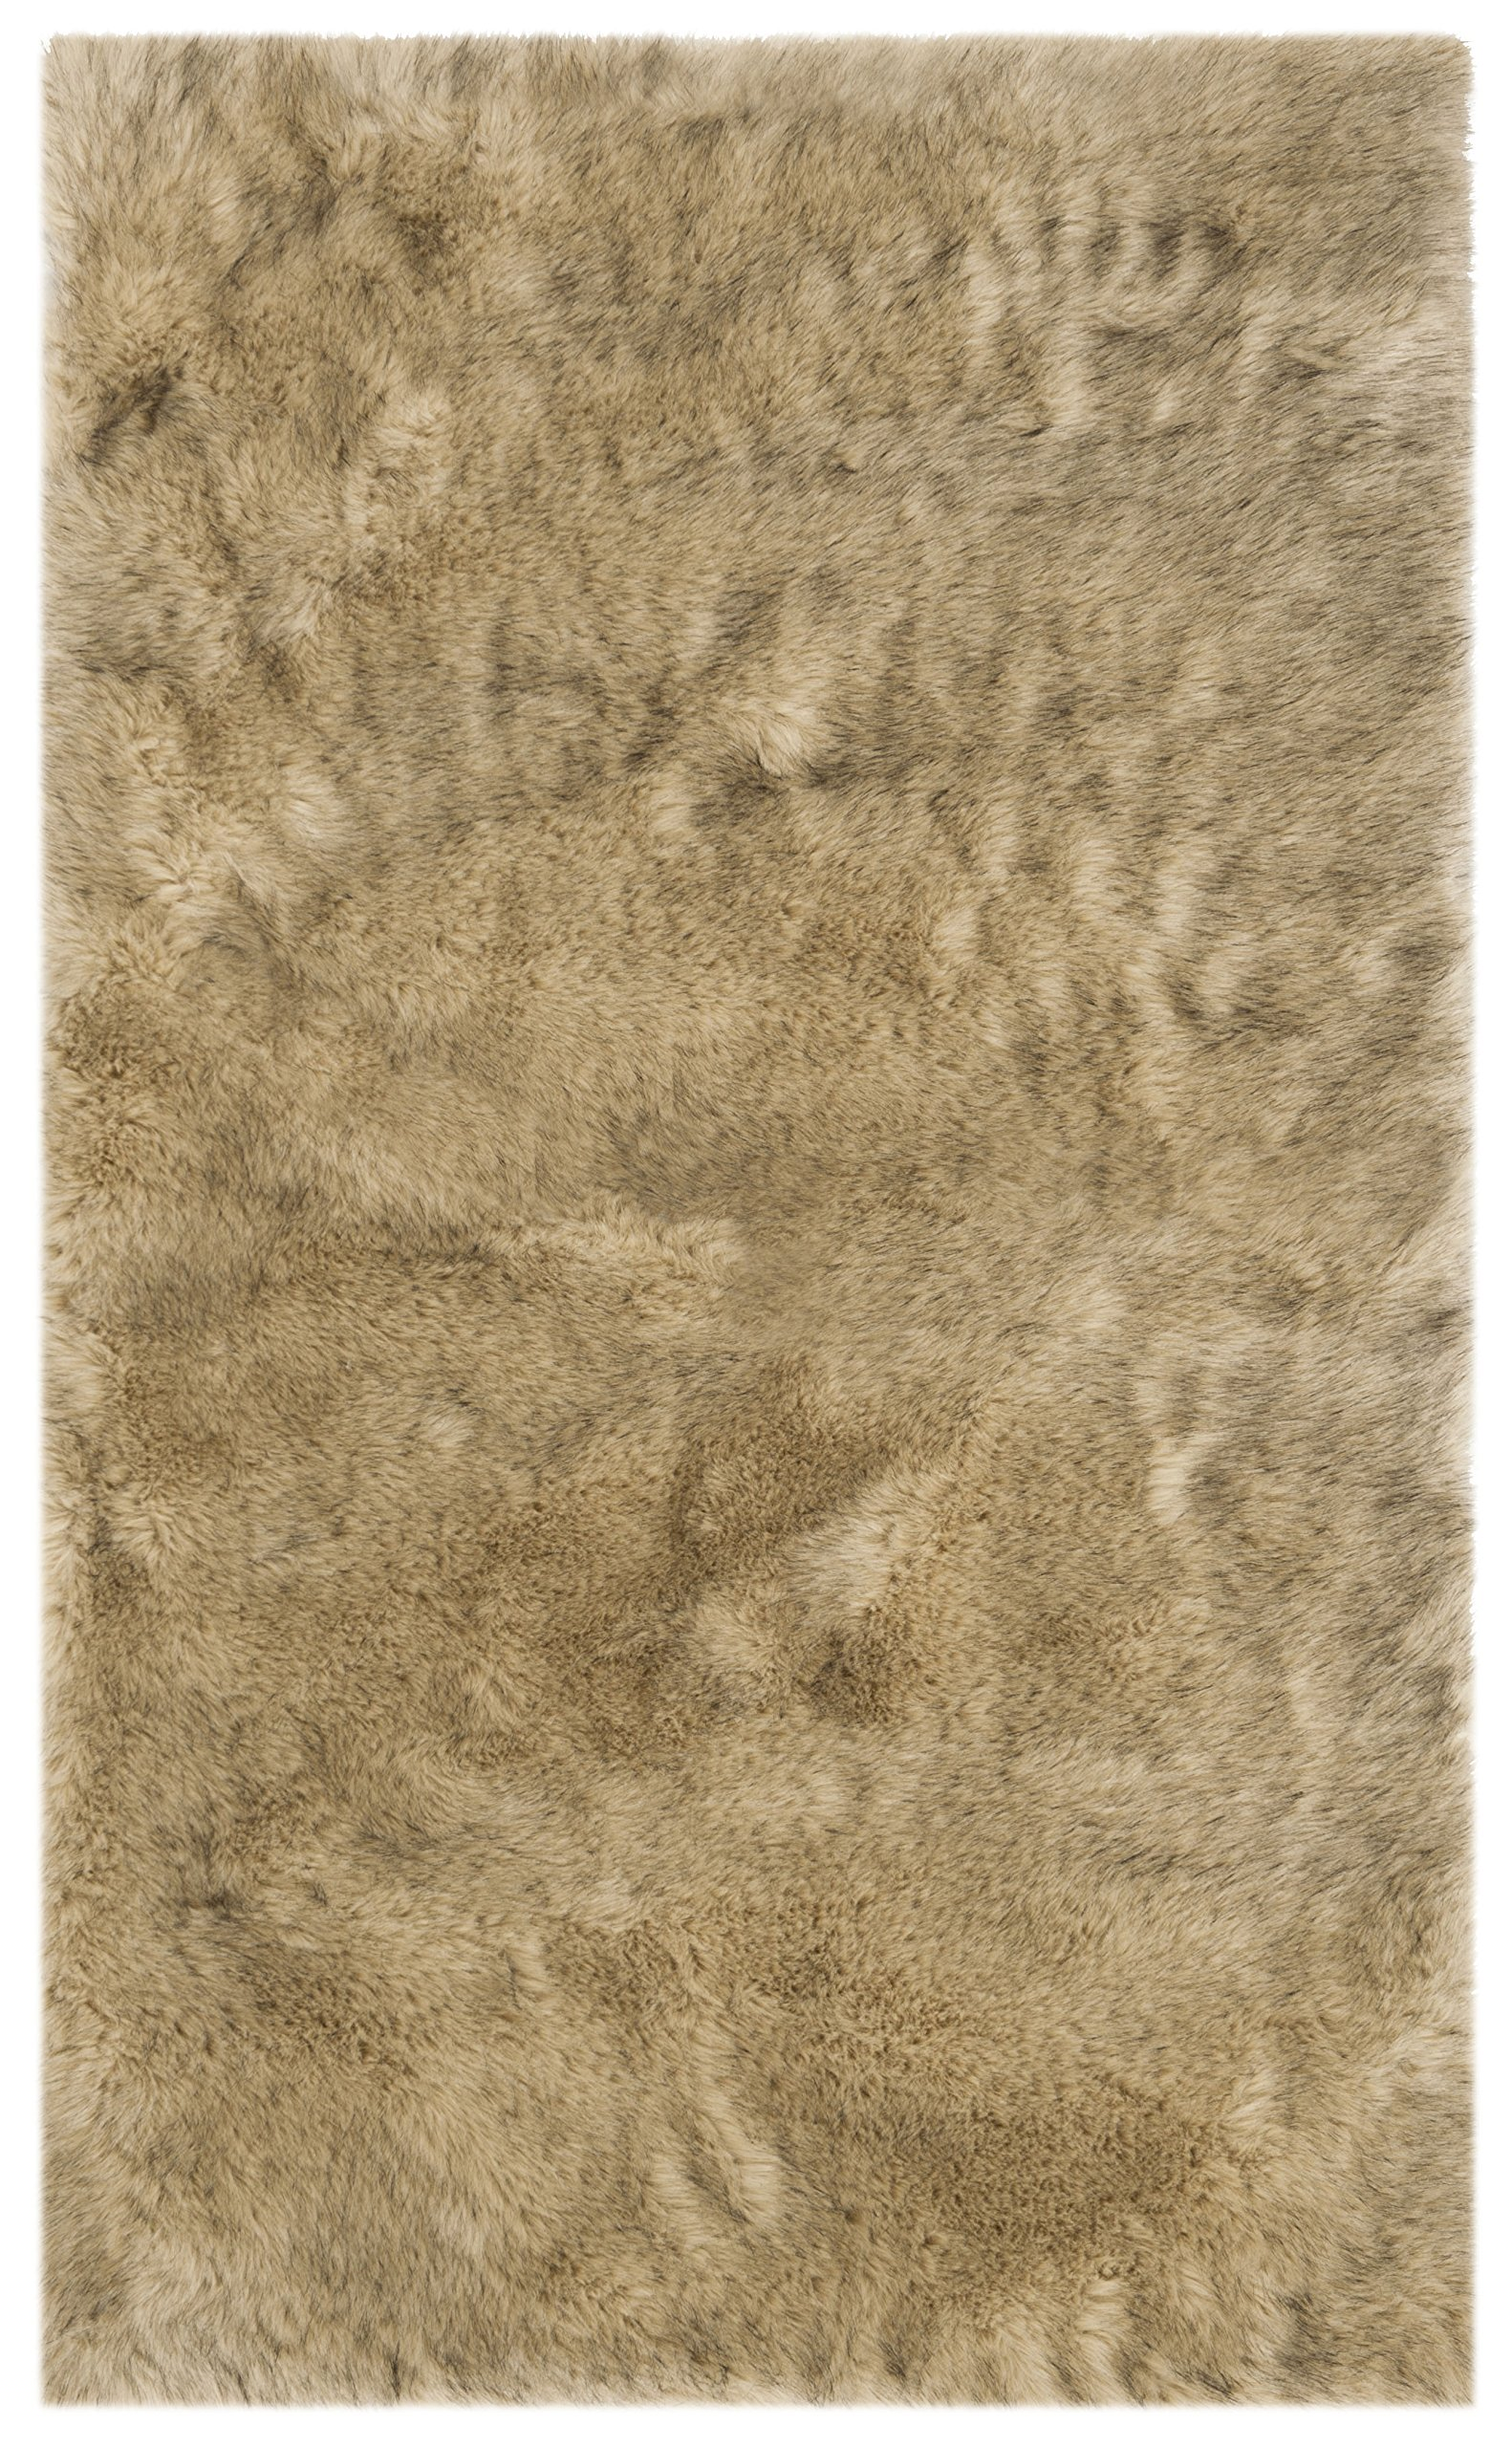 Safavieh Faux Silky Sheep Skin Collection FSS438B Light Grey and Black Area Rug (3' x 5')